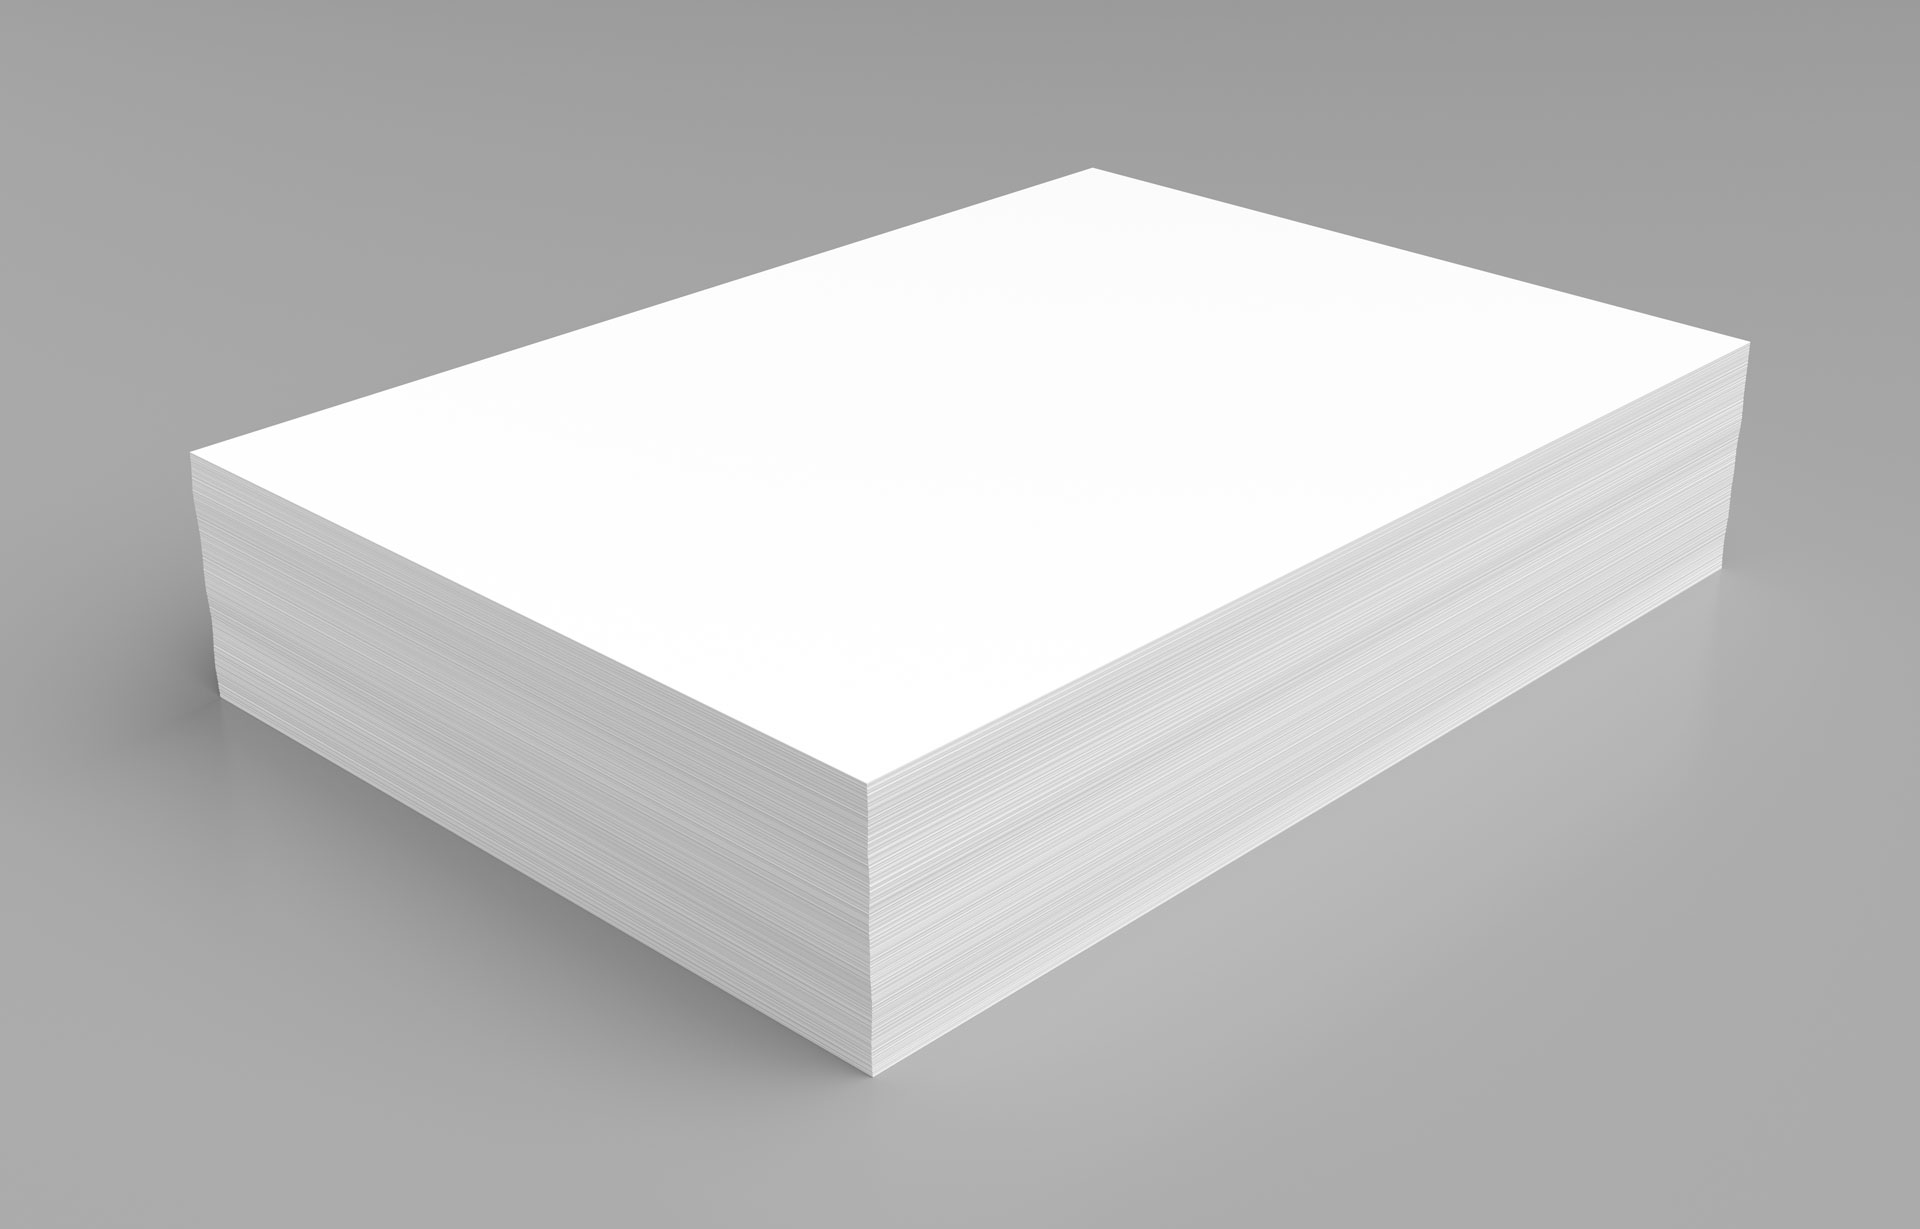 A4 Laser Compatible Paper – In Loving Memory Of